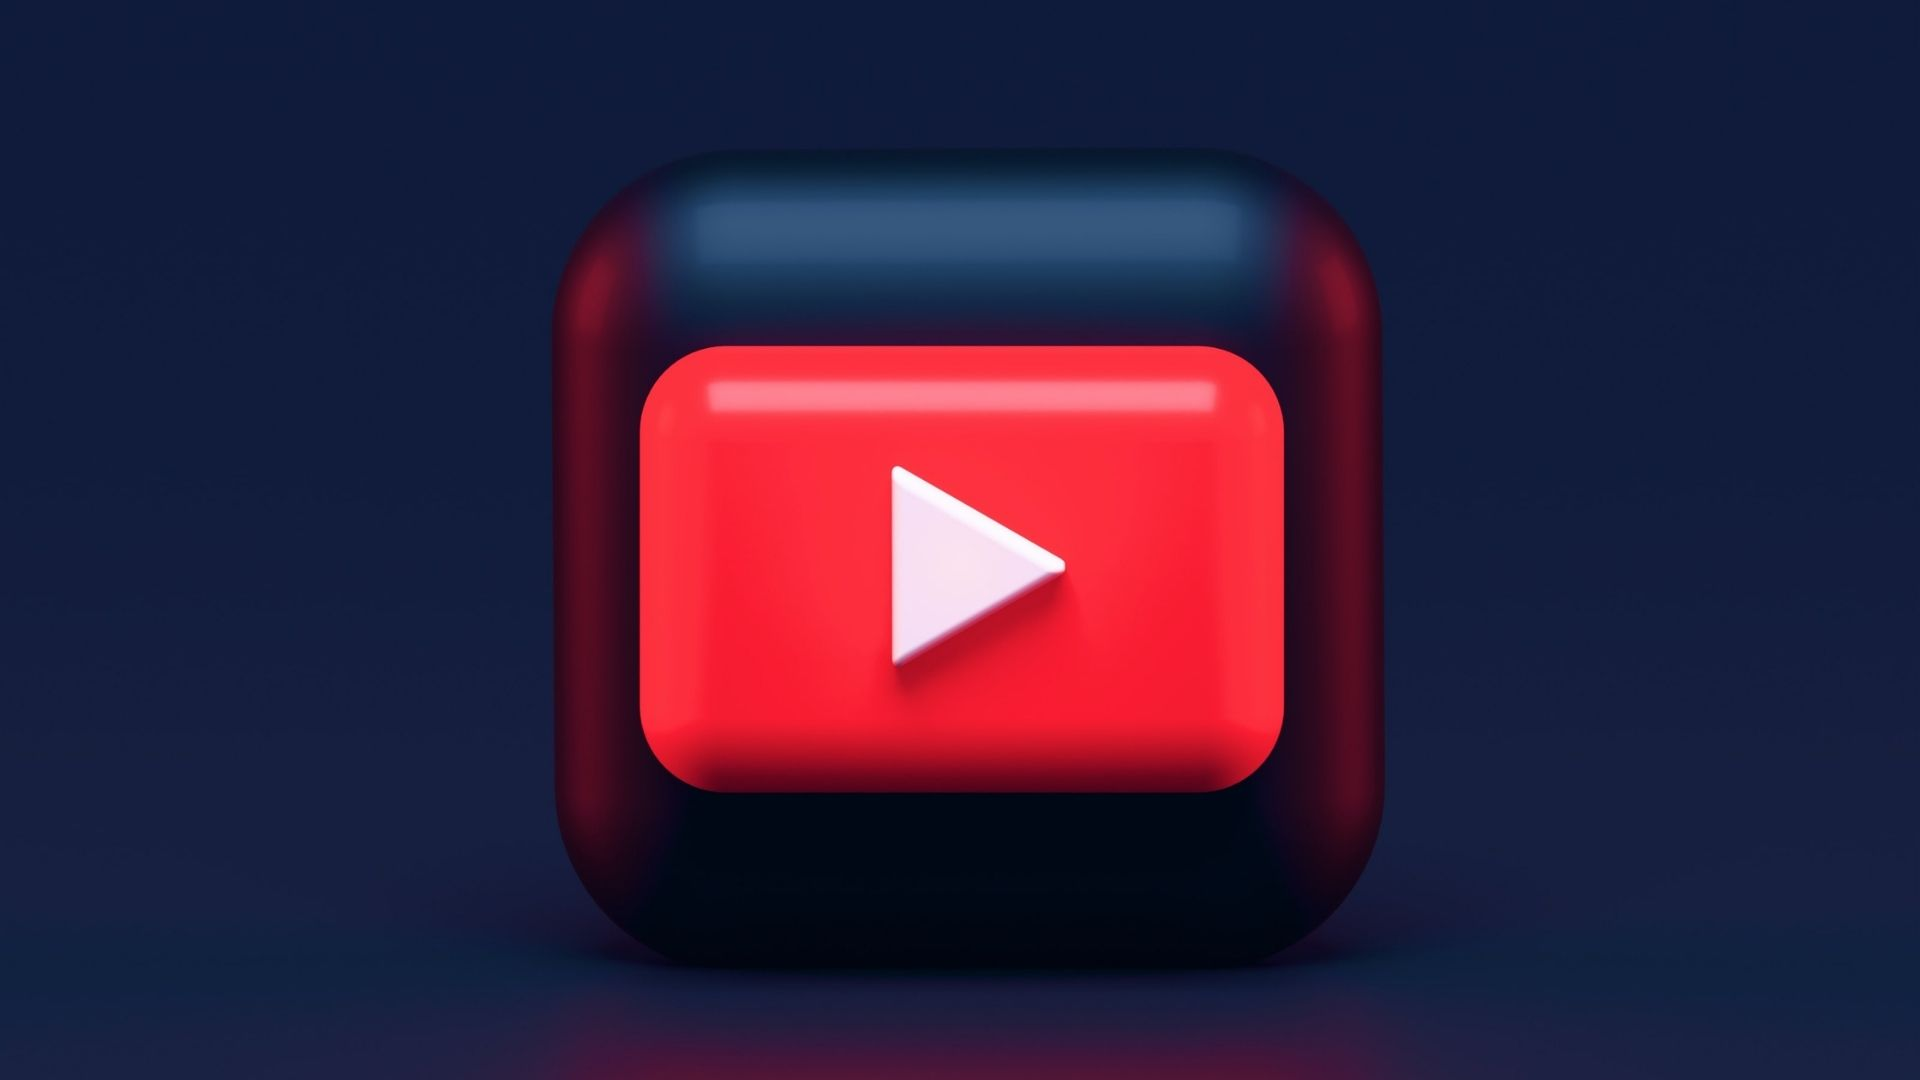 How to Use YouTube to Market Your Small Business, youtube tips 2021, youtube marketing tips 2021, youtube marketing tips for businesses 2021